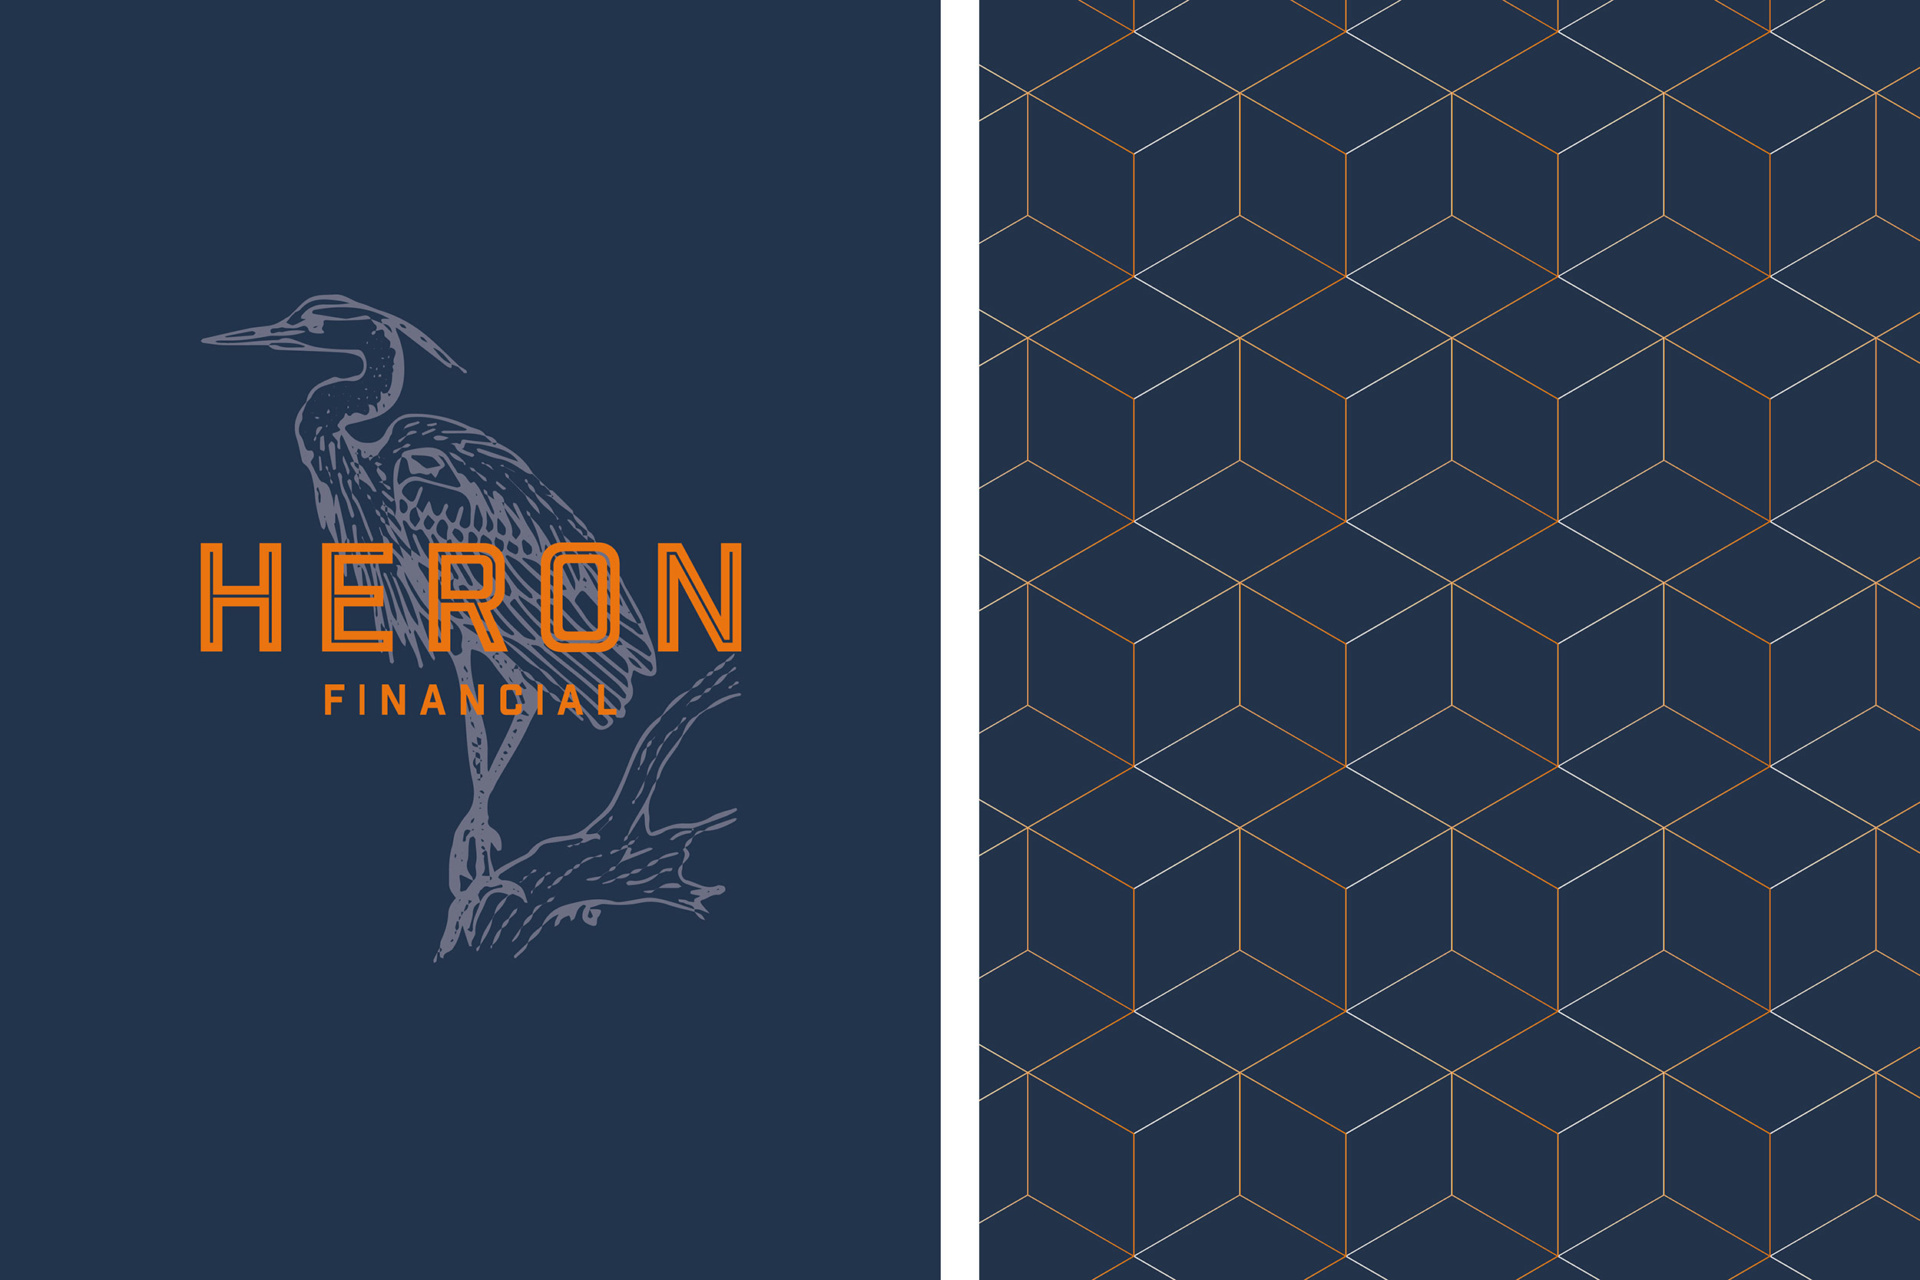 Brand identity for Heron Financial, Mortgage and Insurance Brokers. Featuring a Heron, and an orange pattern. Graphic design by Barefaced Studios, design agency based in Islington, North London.